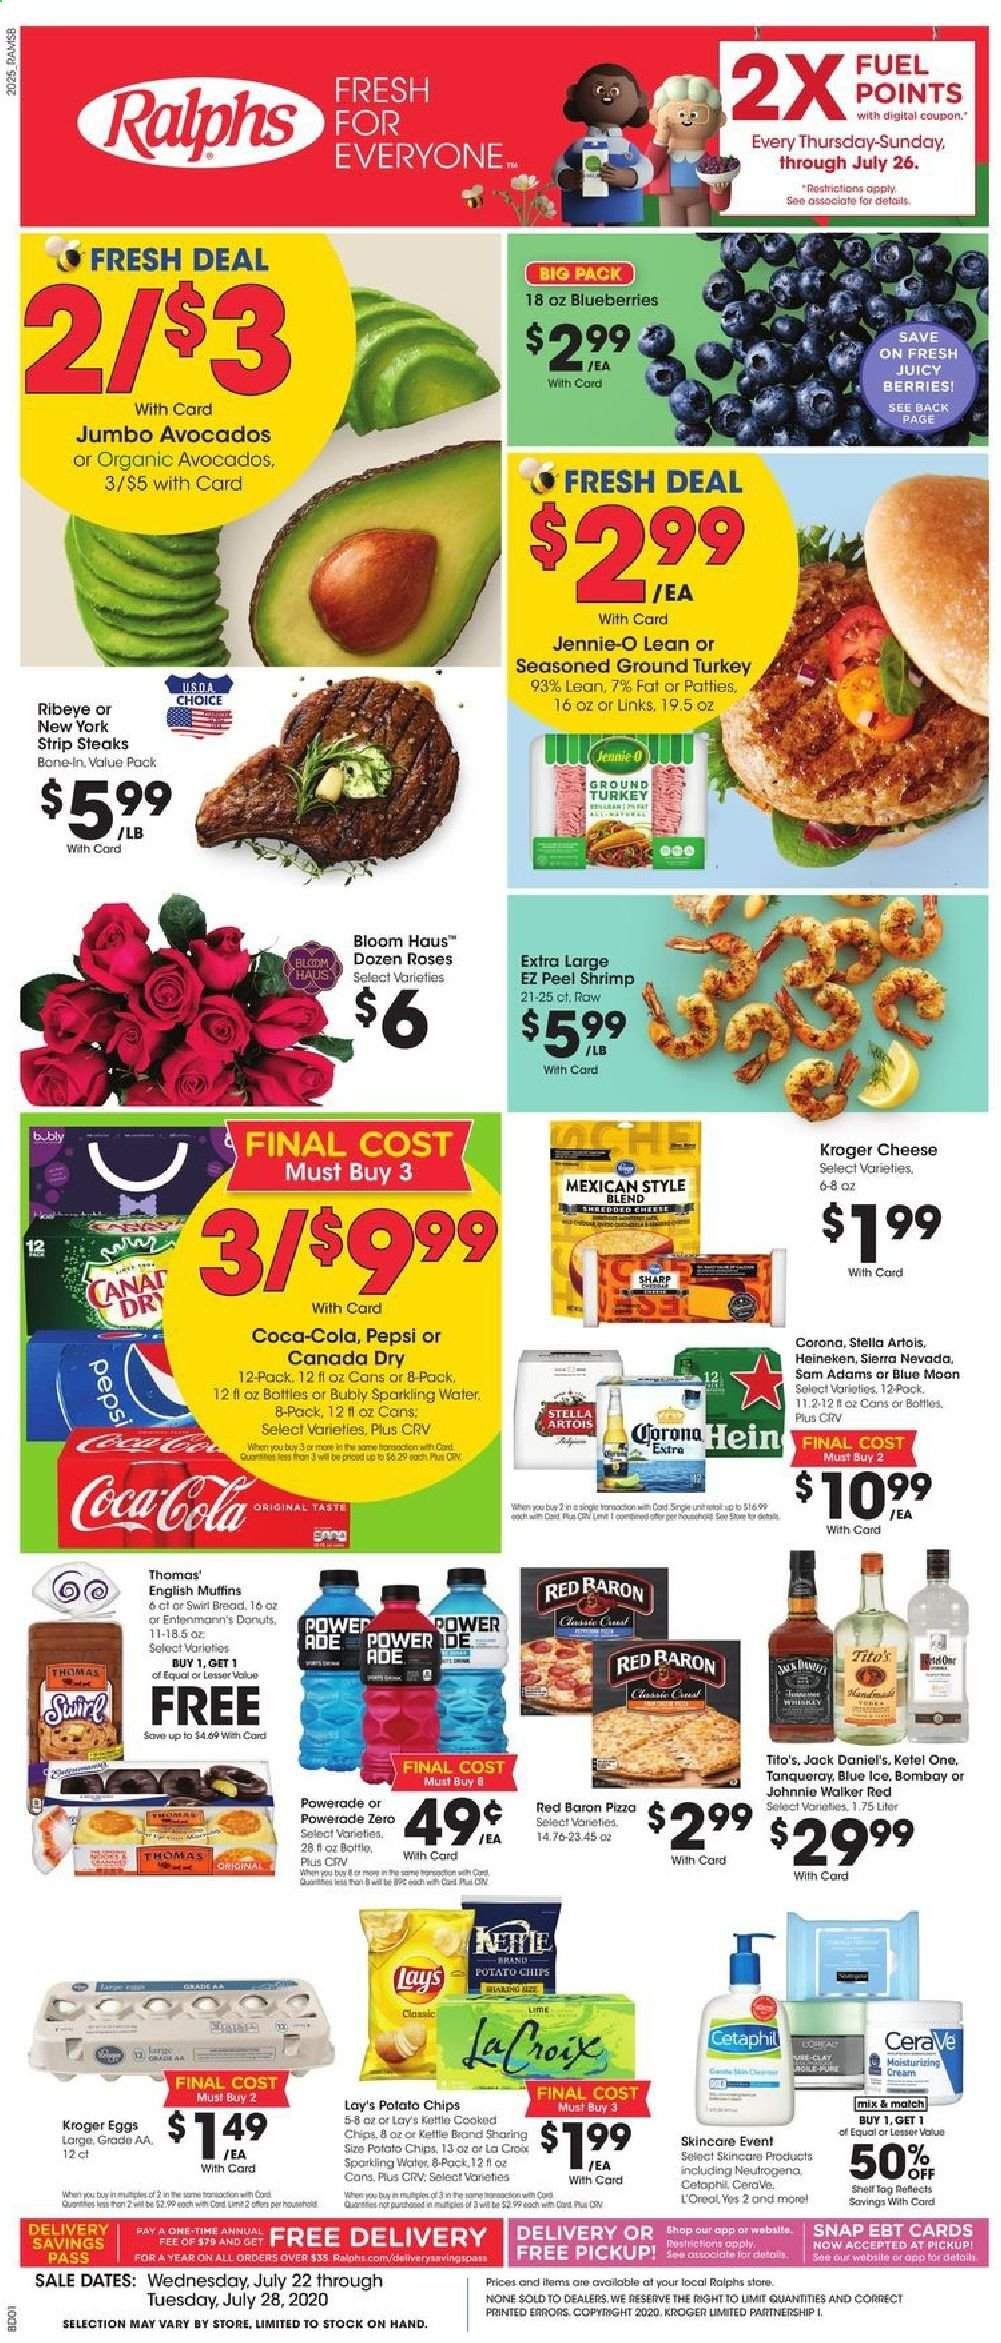 Ralphs Flyer - 07.22.2020 - 07.28.2020 - Sales products - Stella Artois, Corona, Blue Moon, avocado, blueberries, bread, donut, muffin, shrimps, english muffins, pizza, cheese, eggs, potato chips, chips, Lay's, Canada Dry, Coca-Cola, Powerade, Pepsi, sparkling water, water, Jack Daniel's, ground turkey, turkey, CeraVe, L'Oréal, Neutrogena, Sharp, kettle, roses, cream. Page 1.